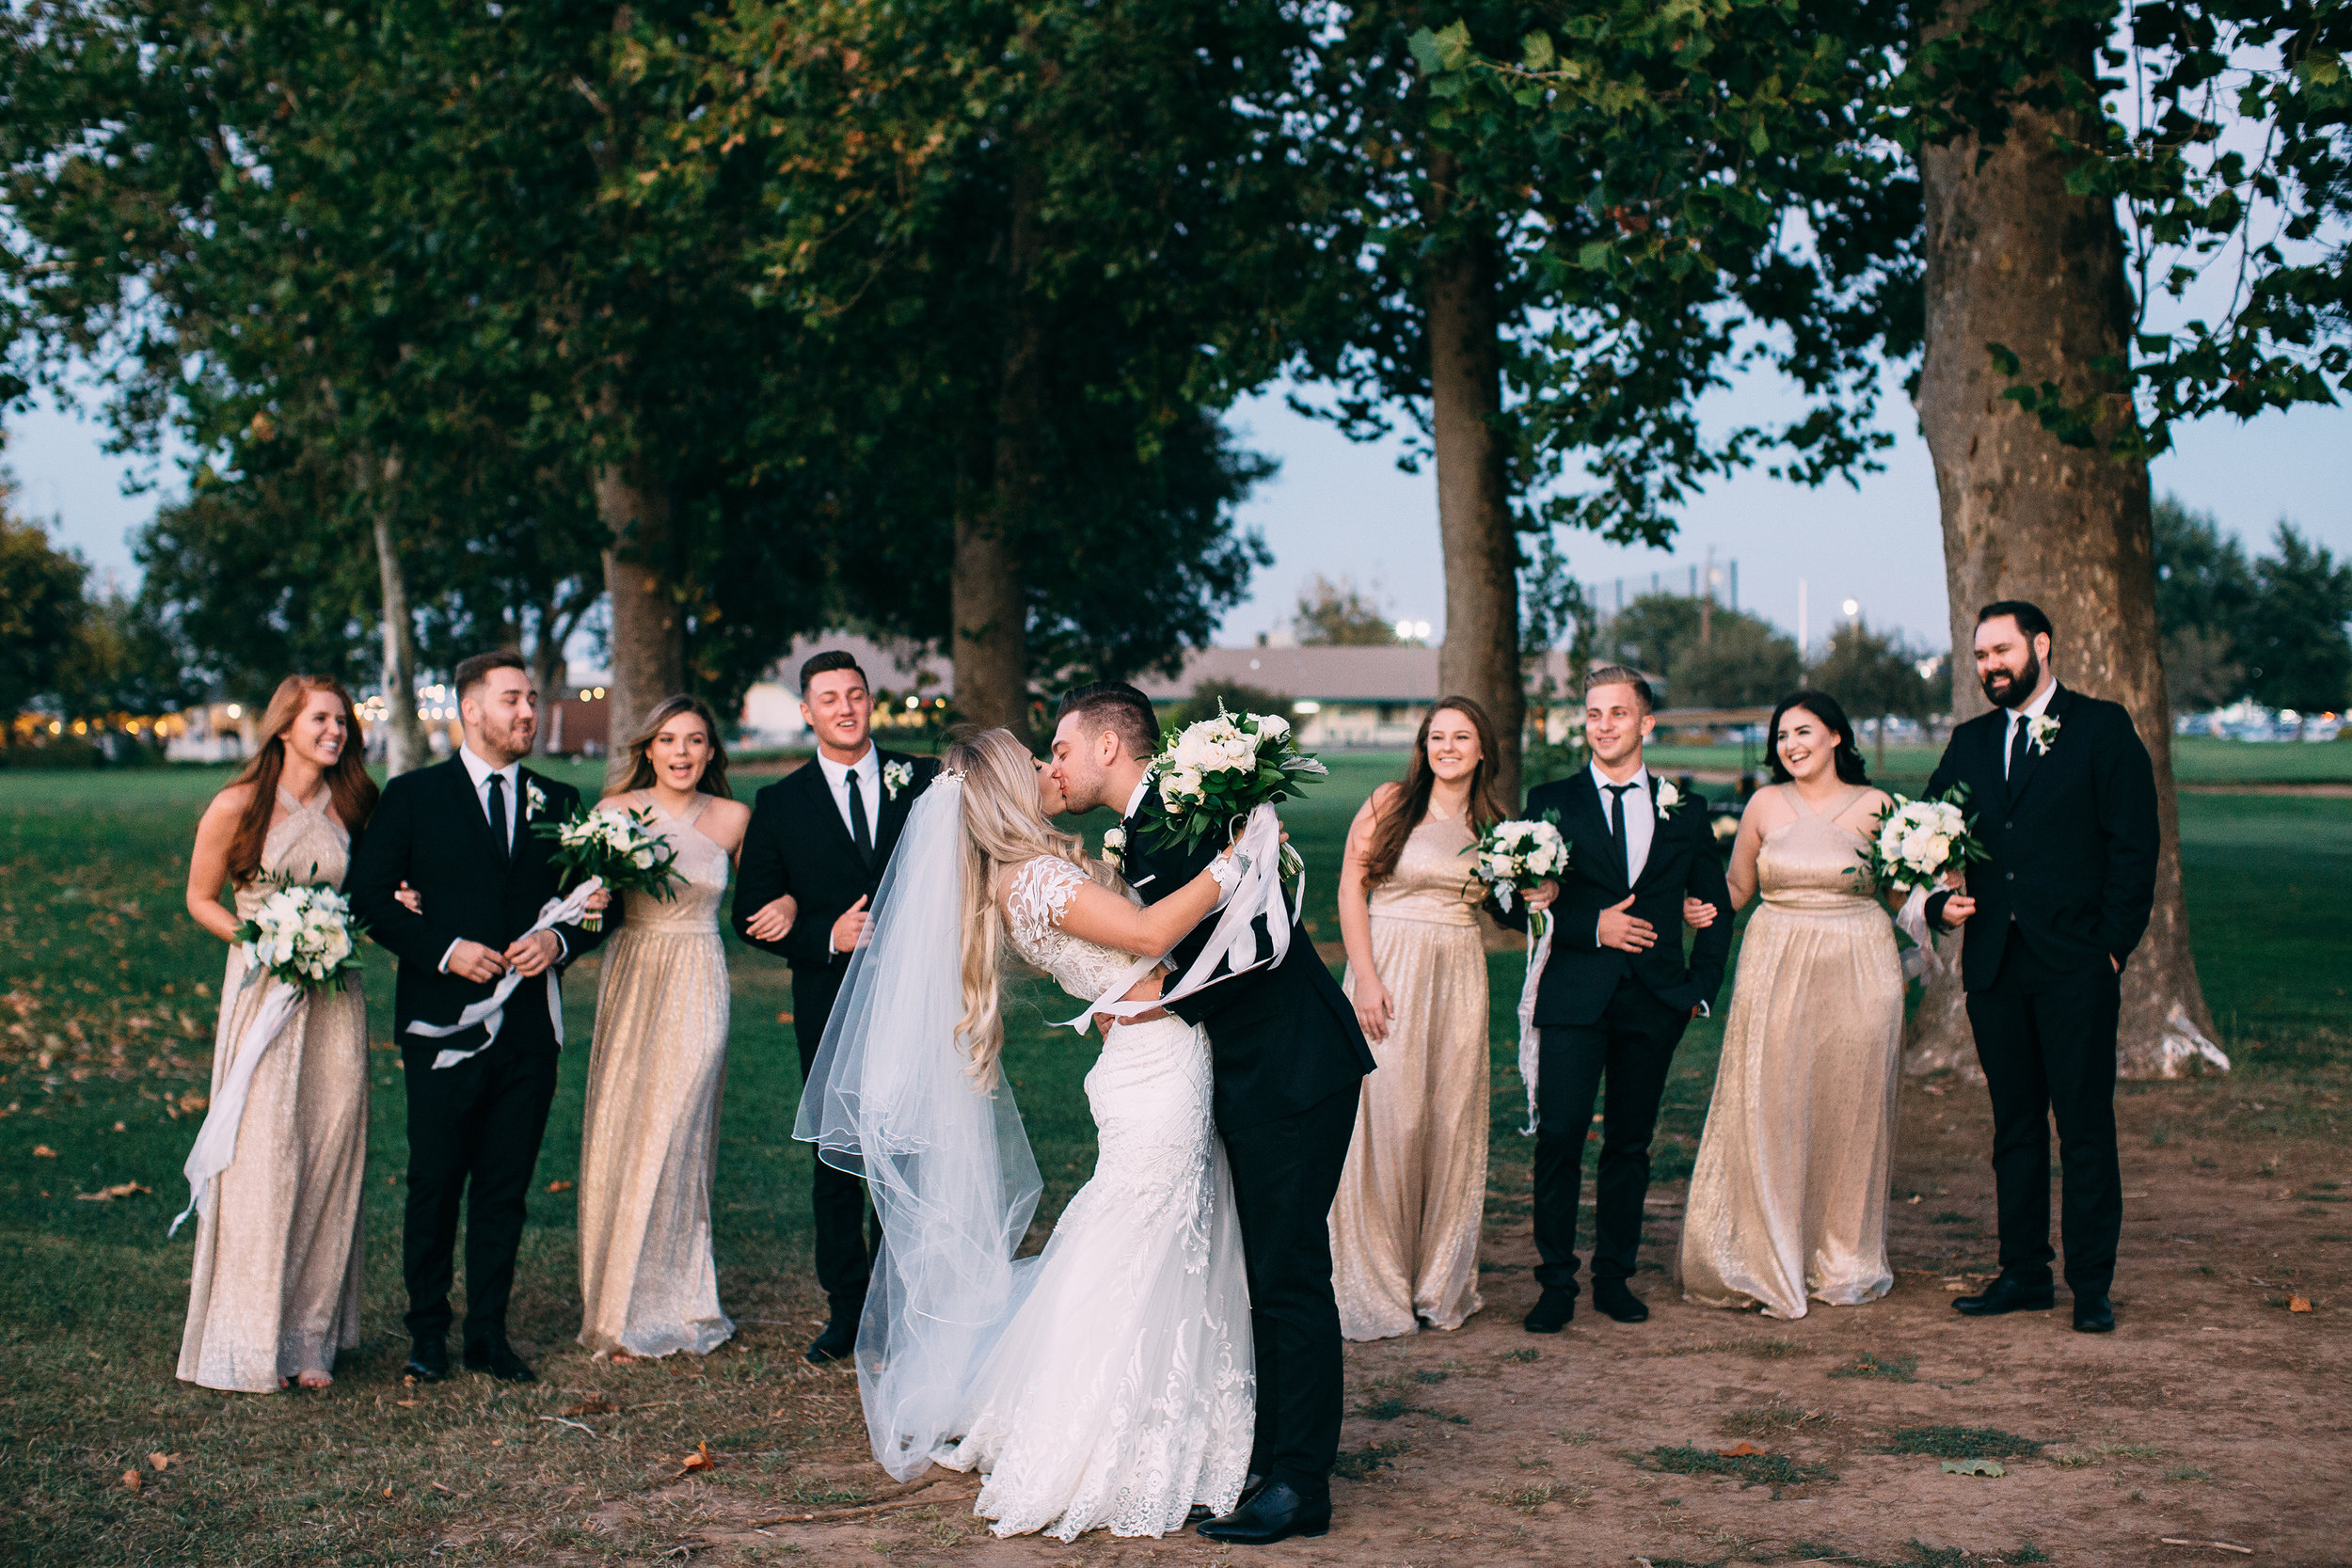 bride_groom_kiss_bridesmaids_groomsmen_bridal_party_luxury_upscale_wedding_decor_violette_fleurs_anna_perevertaylo.jpg